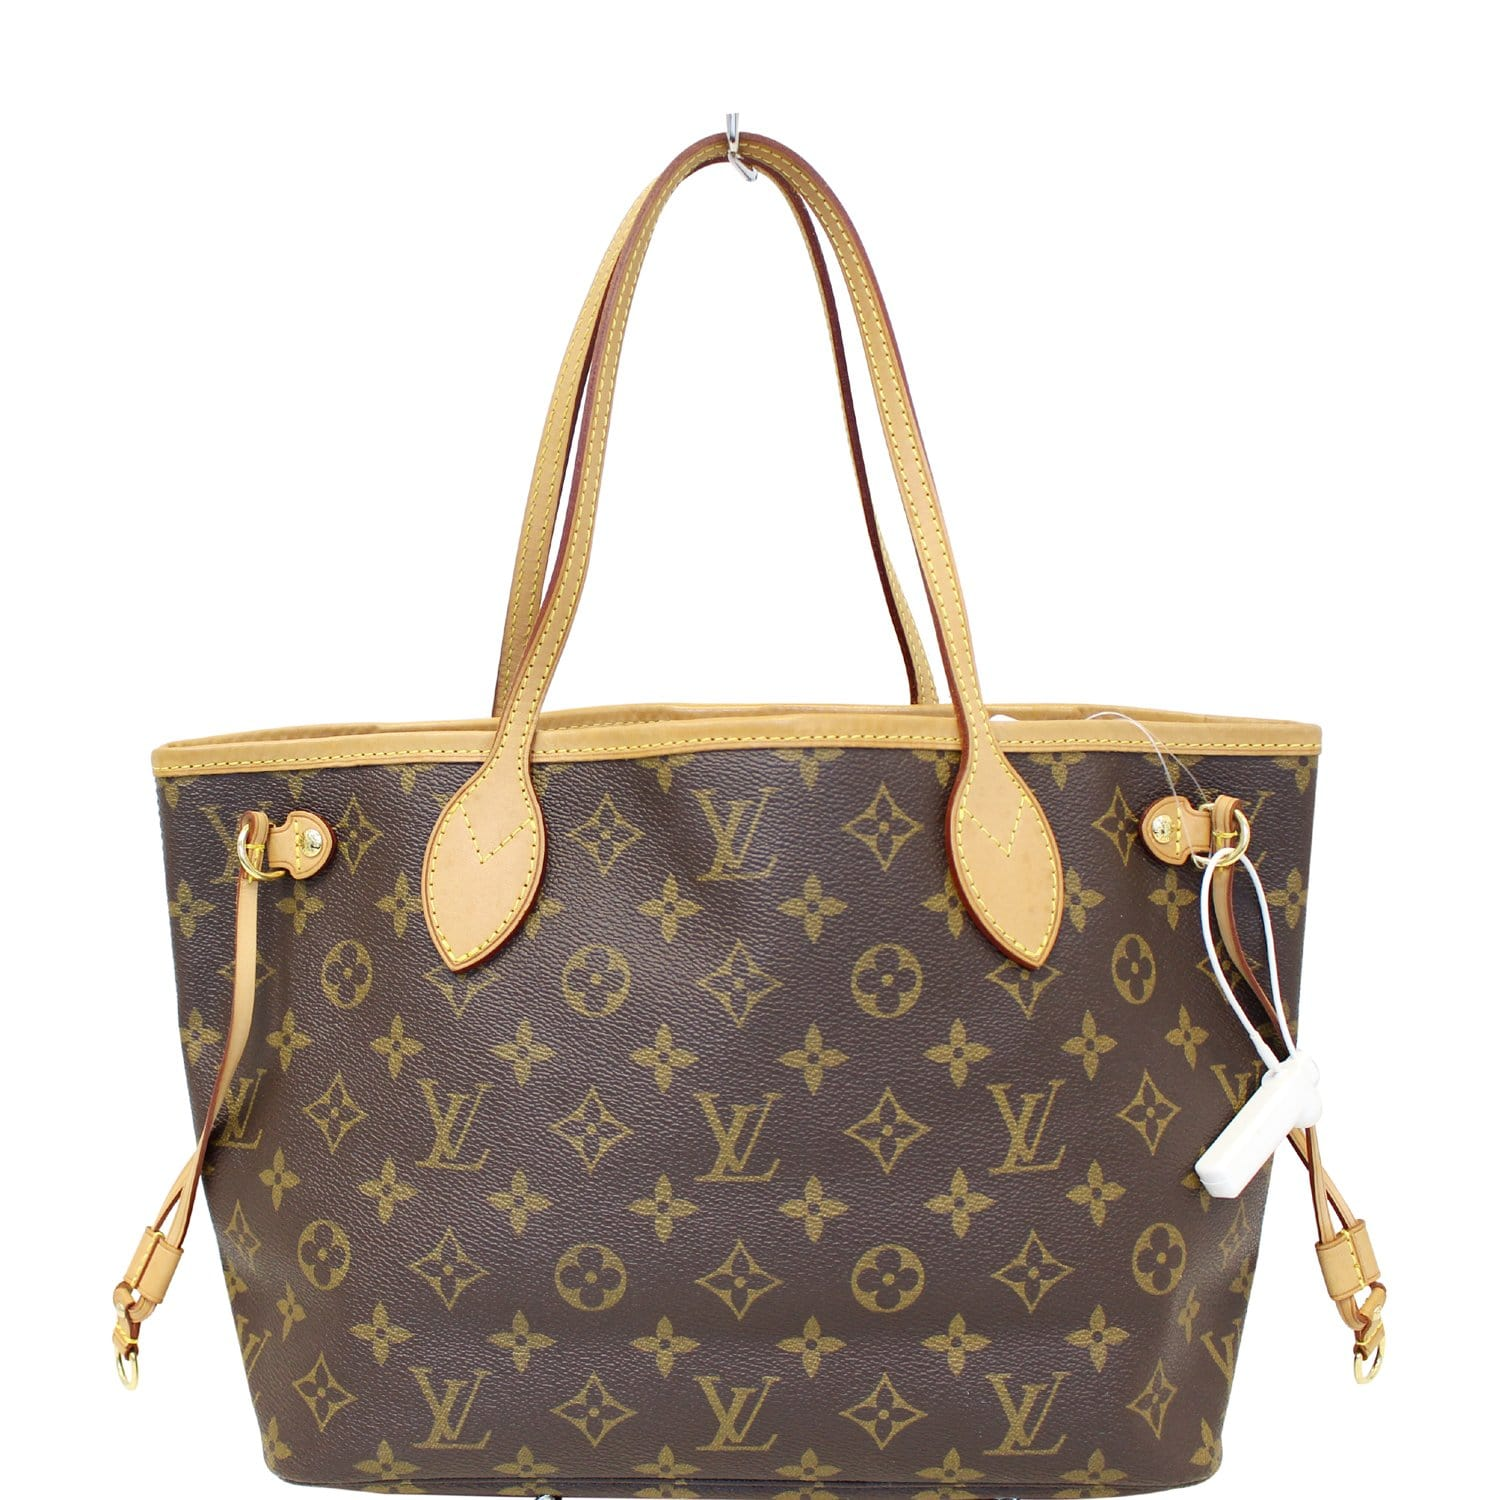 7e74160e5 LOUIS VUITTON Neverfull PM Monogram Canvas Tote Bag-US